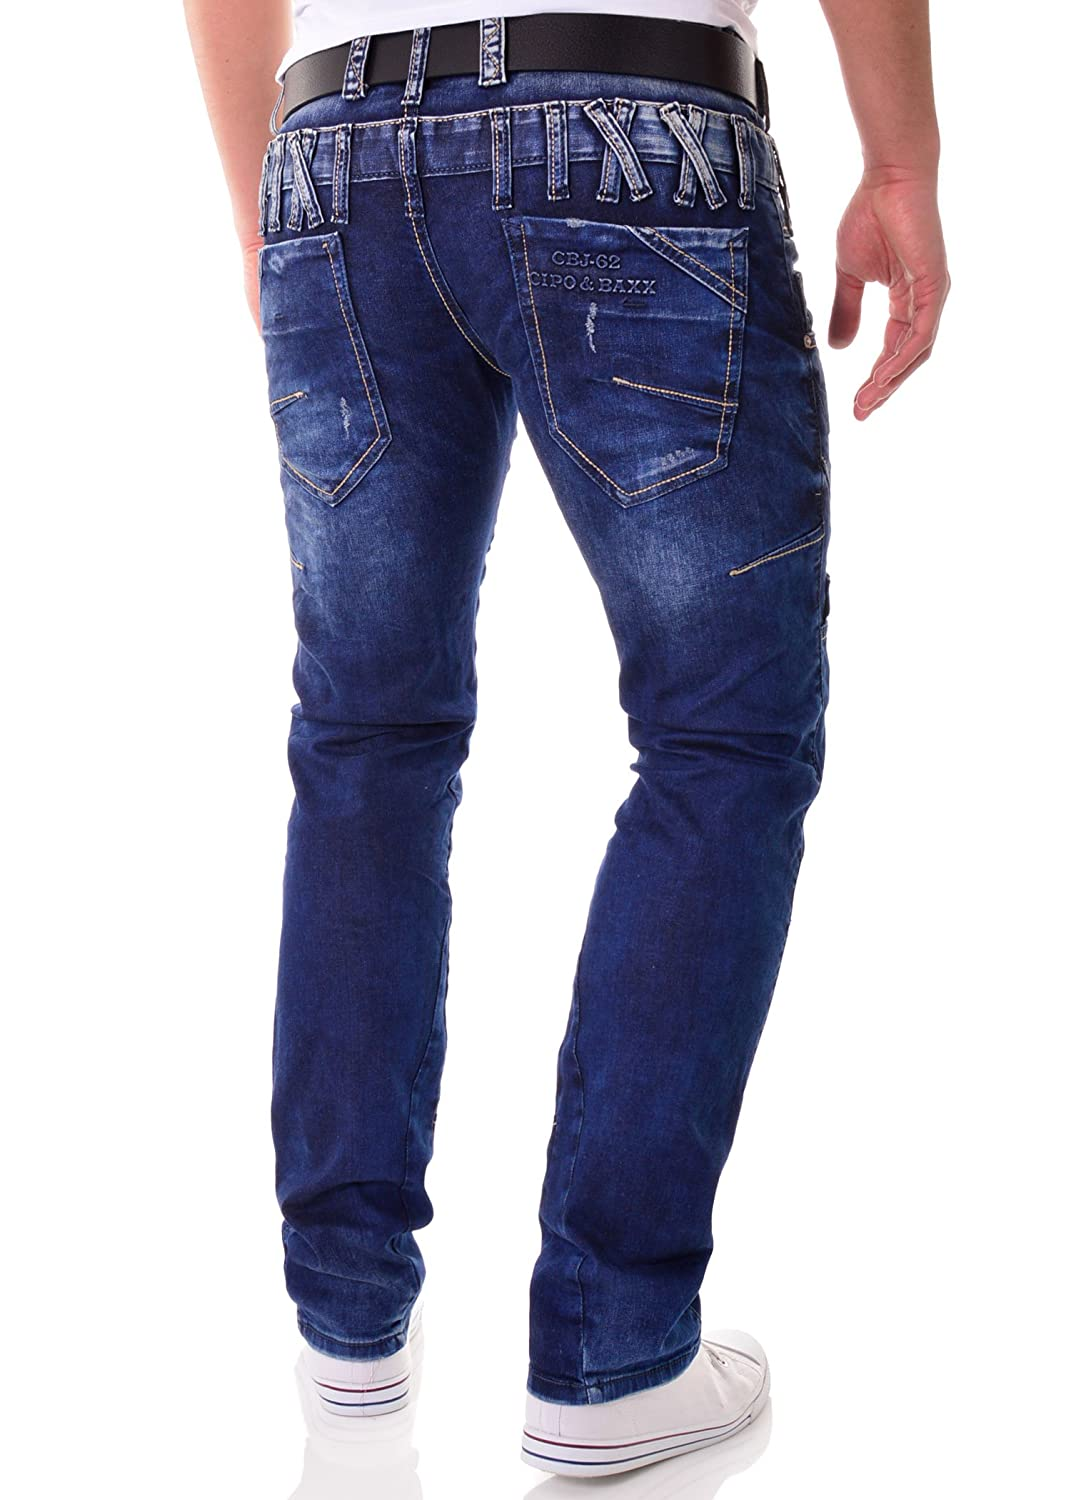 155f75a8a3 Cipo   Baxx Men s Blue Jeans Trousers Pants with Double Waist and Seams  W38 L34  Amazon.co.uk  Clothing